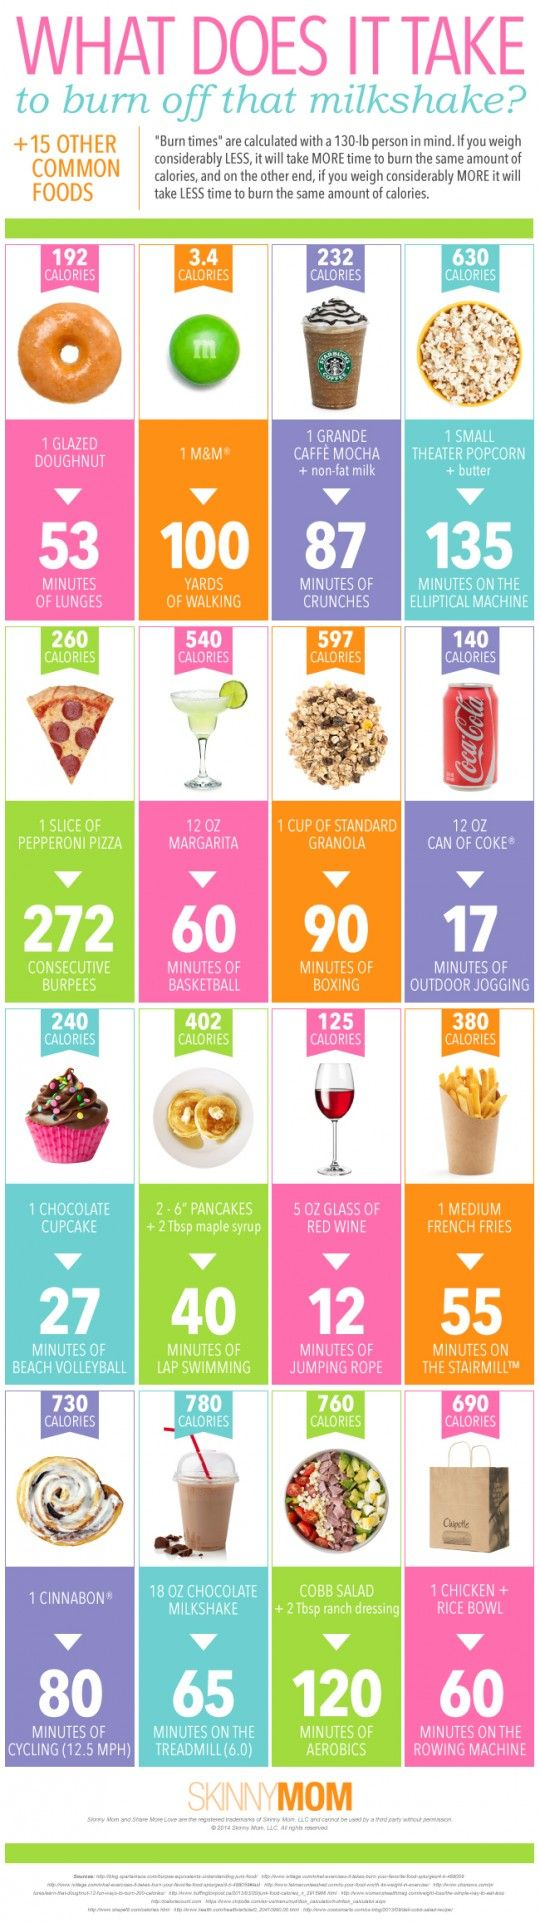 For #weightloss, before you eat that look at how long it takes to burn the food you eat off ...